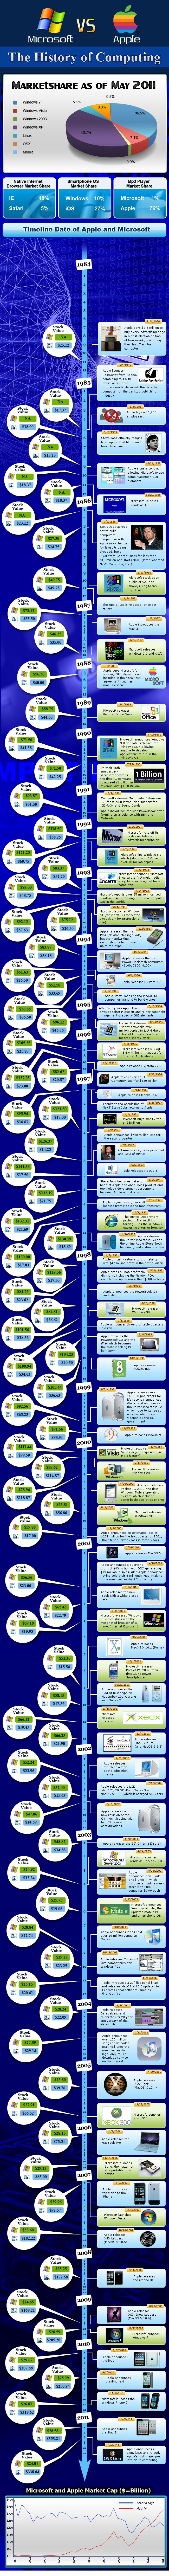 Apple-vs-Microsoft-infographic